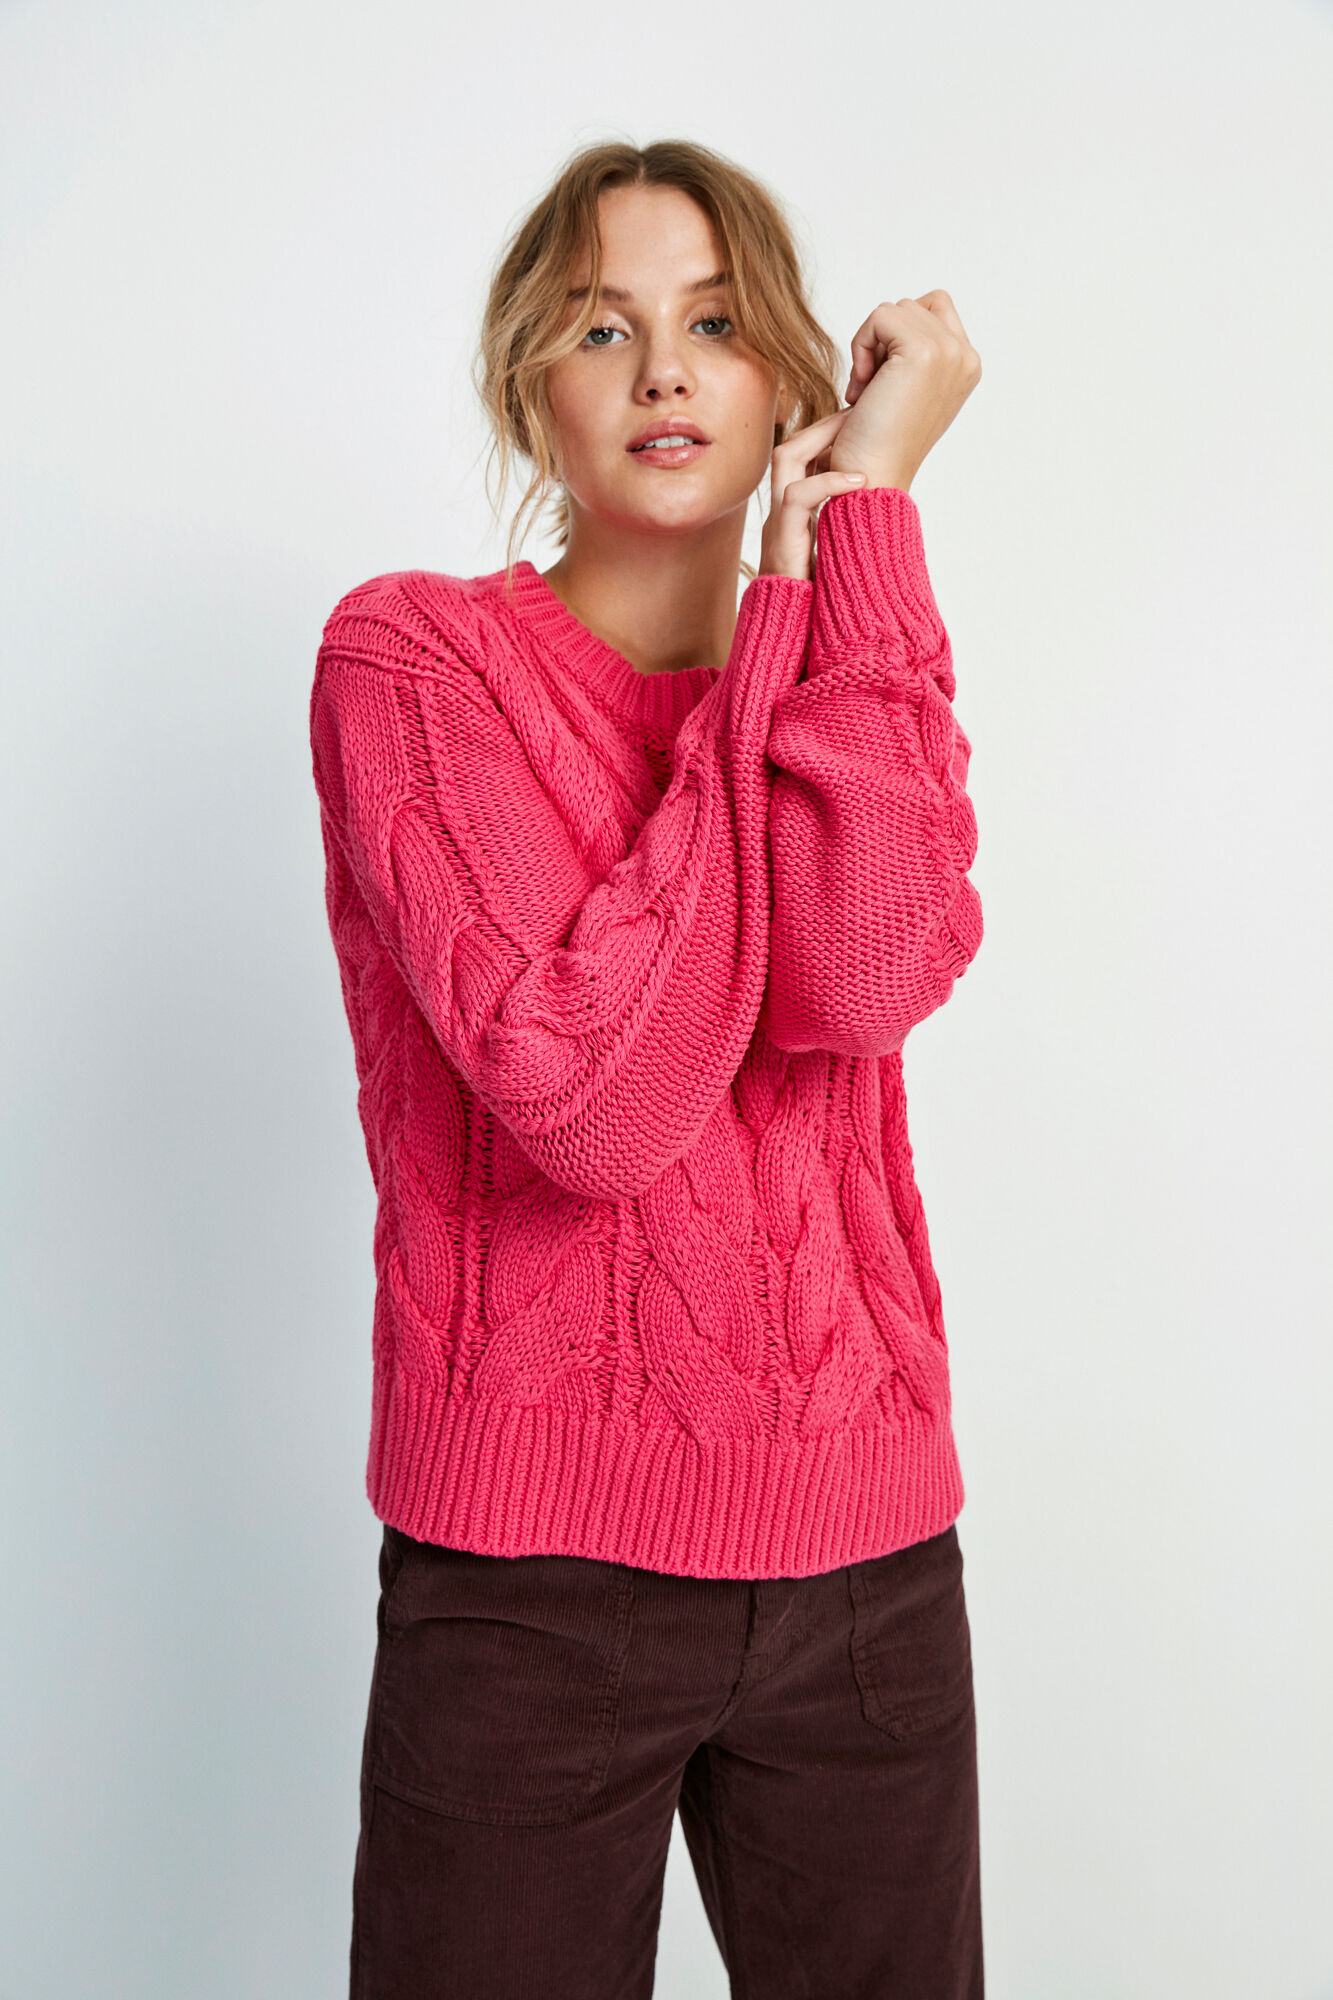 ENSTORM LS KNIT 5190, FUCHSIA PURPLE